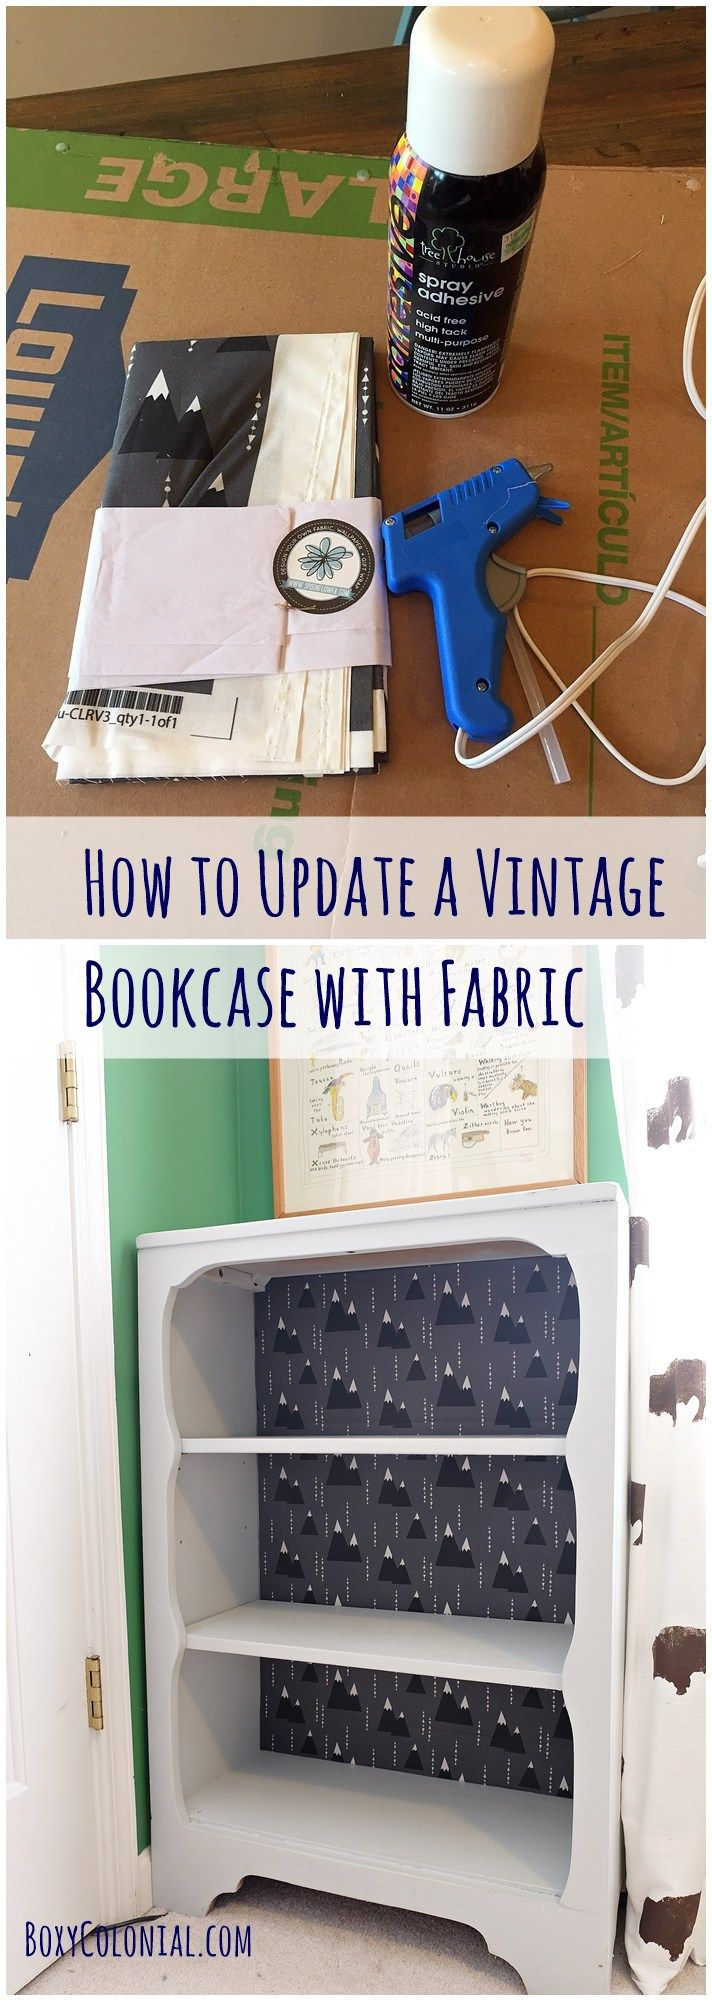 Complete Full Bookcase Daybed With Storage Benchmark Full: 17 Best Ideas About Vintage Bookcase On Pinterest